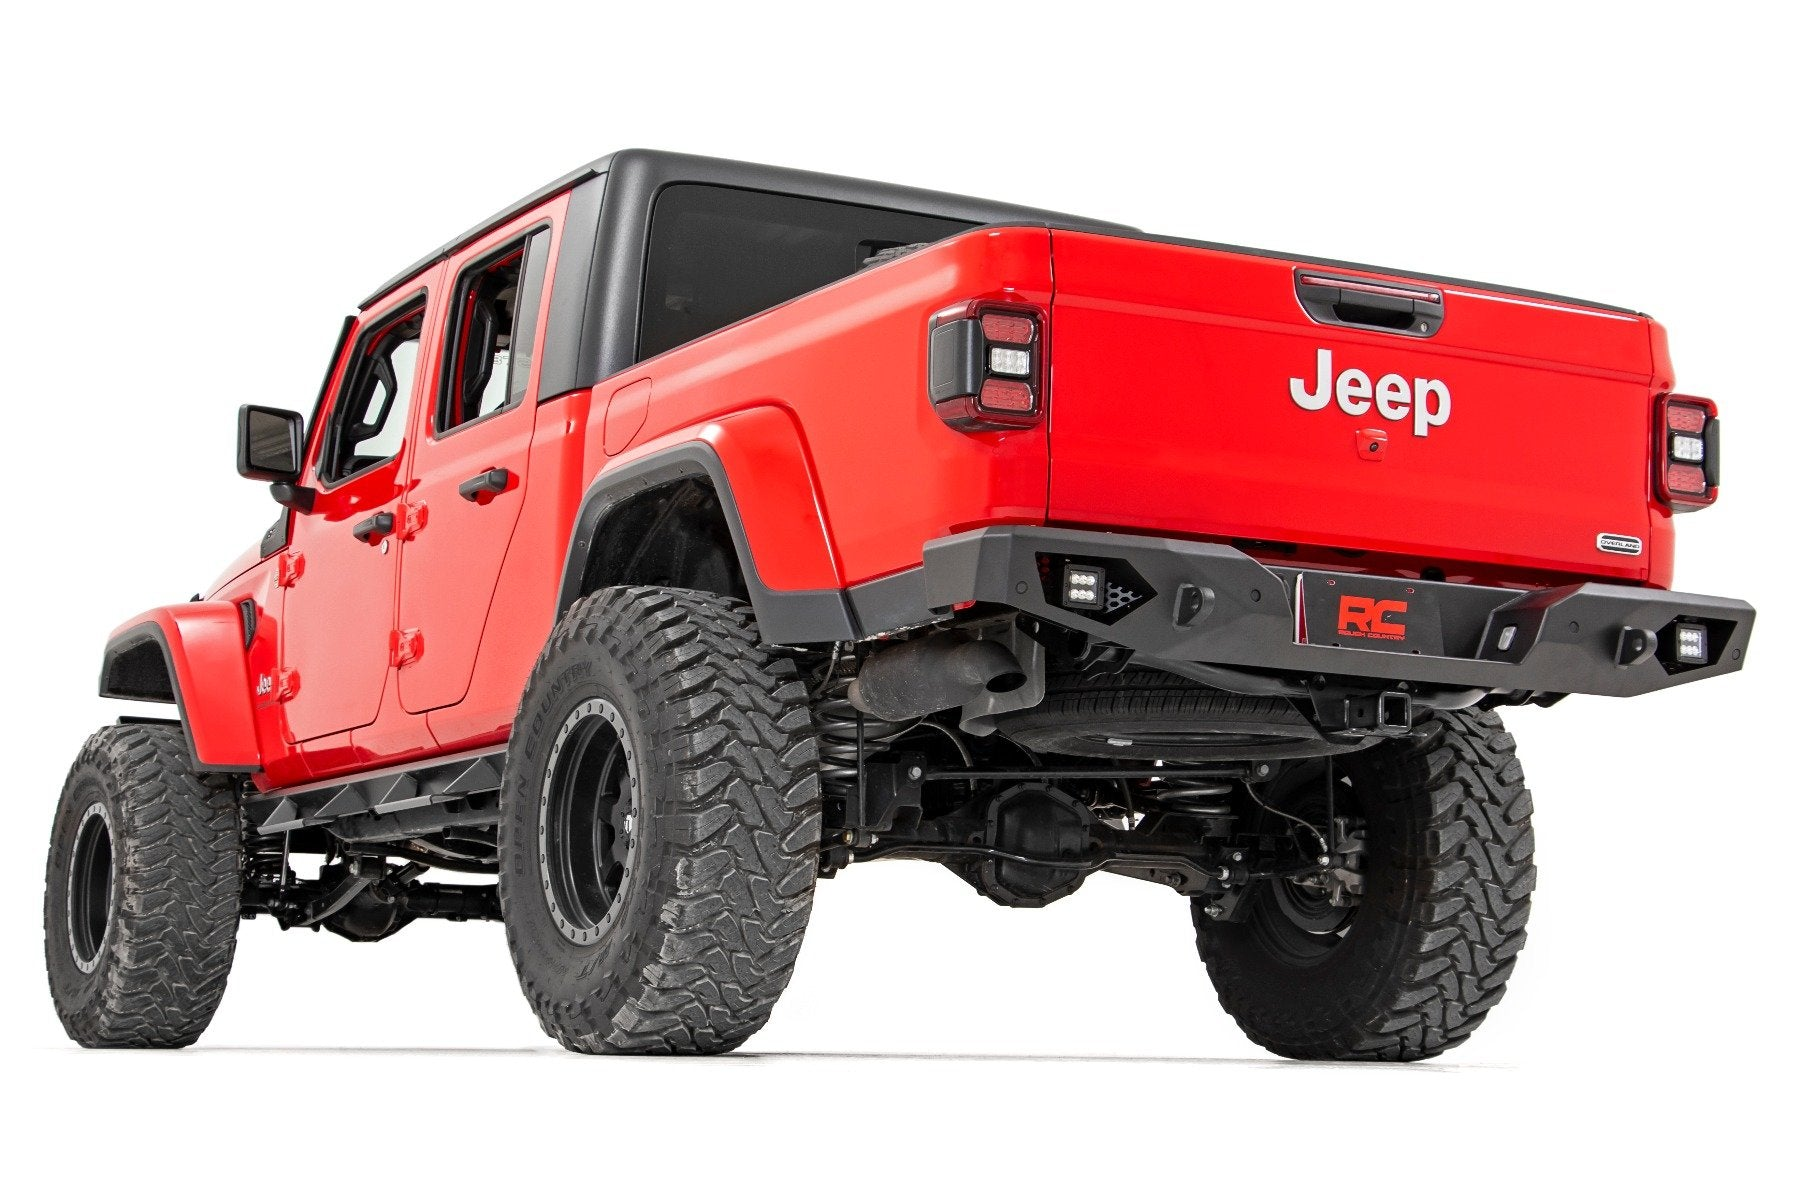 Jeep Heavy-Duty Rear LED Bumper (2020 Gladiator)